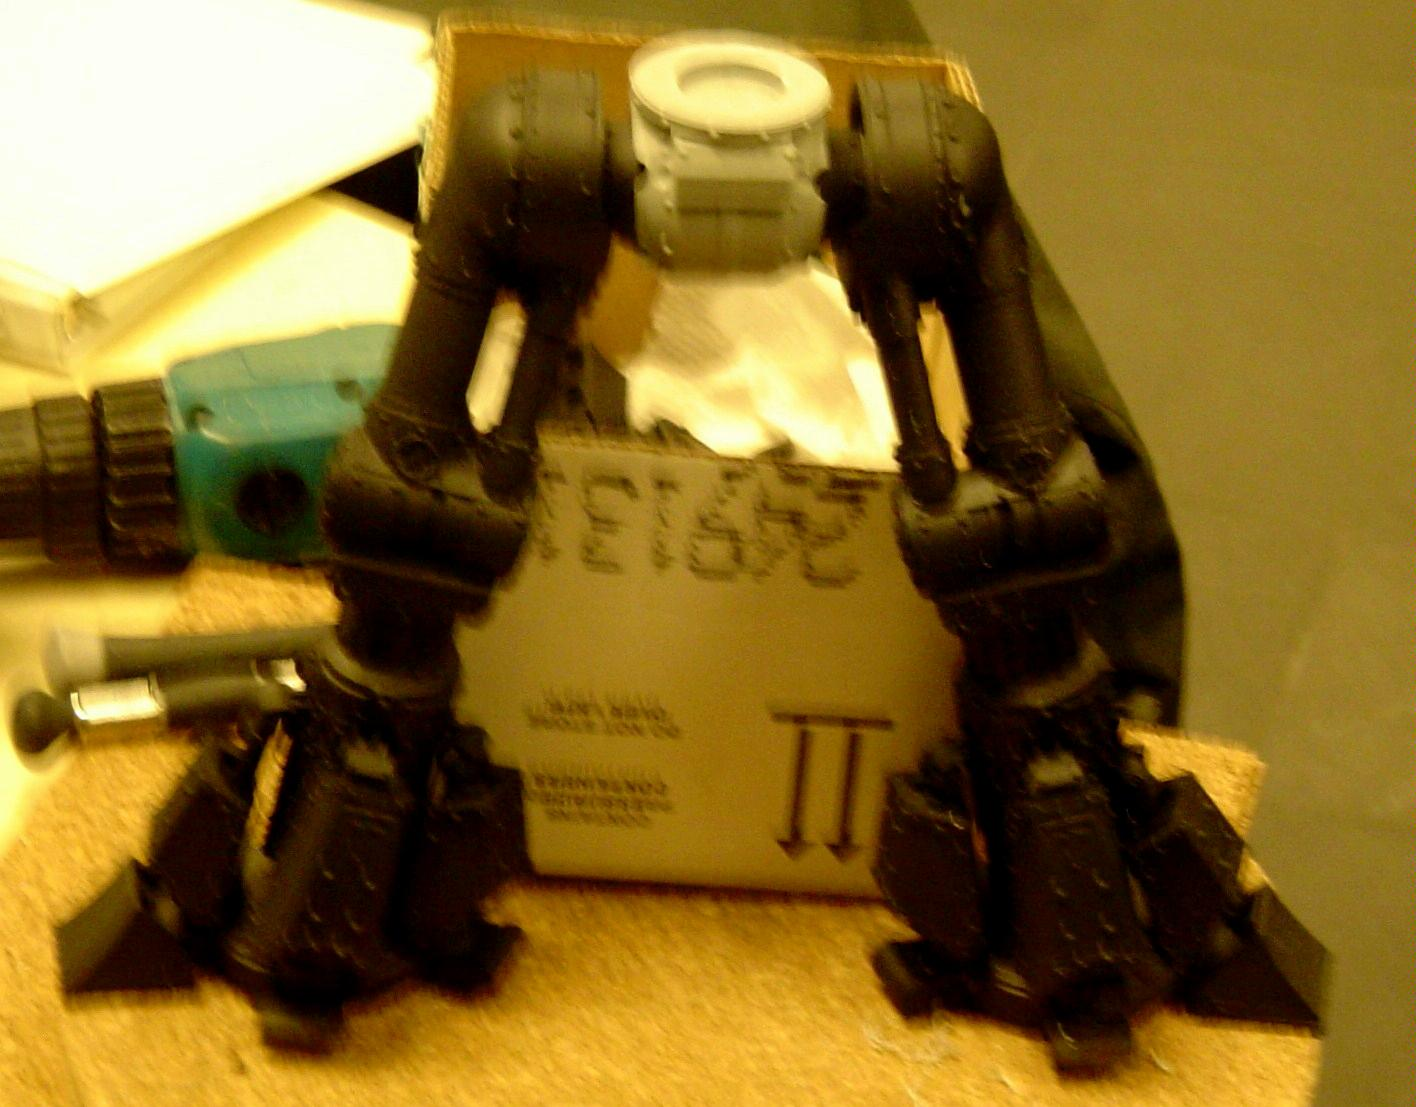 Reaver titan legs and feet